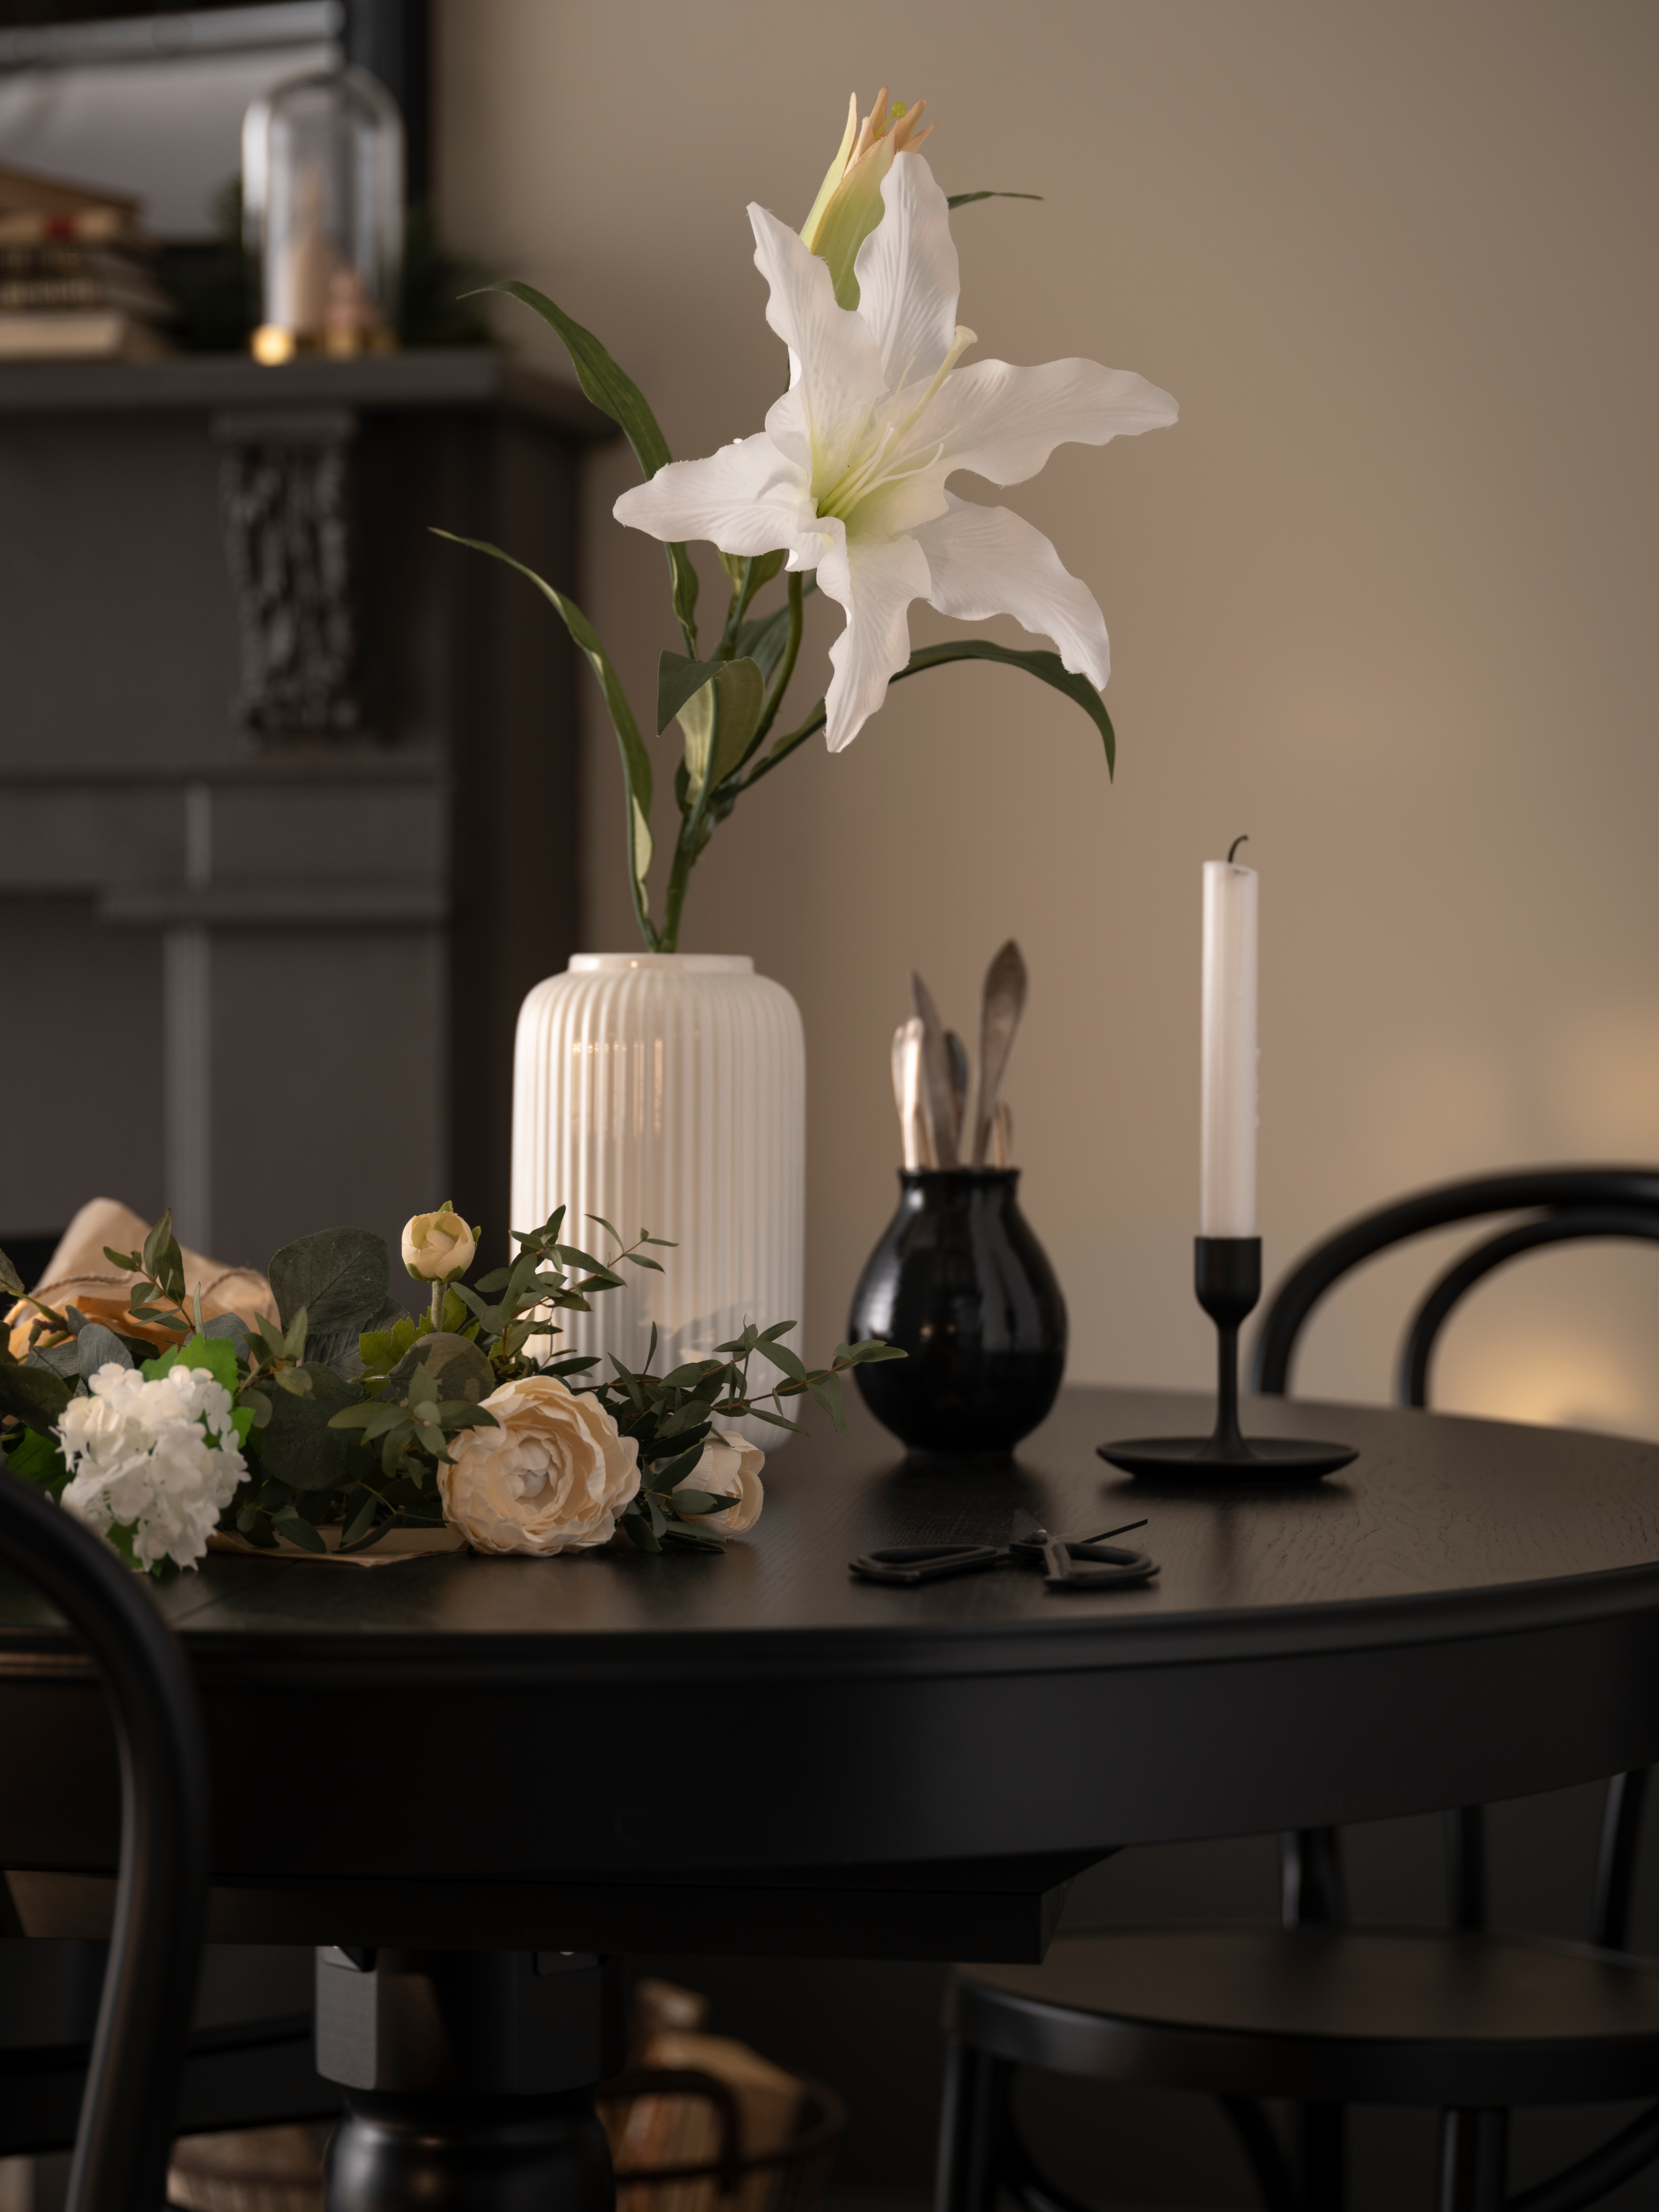 White STILREN vase with a white flower on a tabletop with a bouquet of flowers, candlestick and small pot.